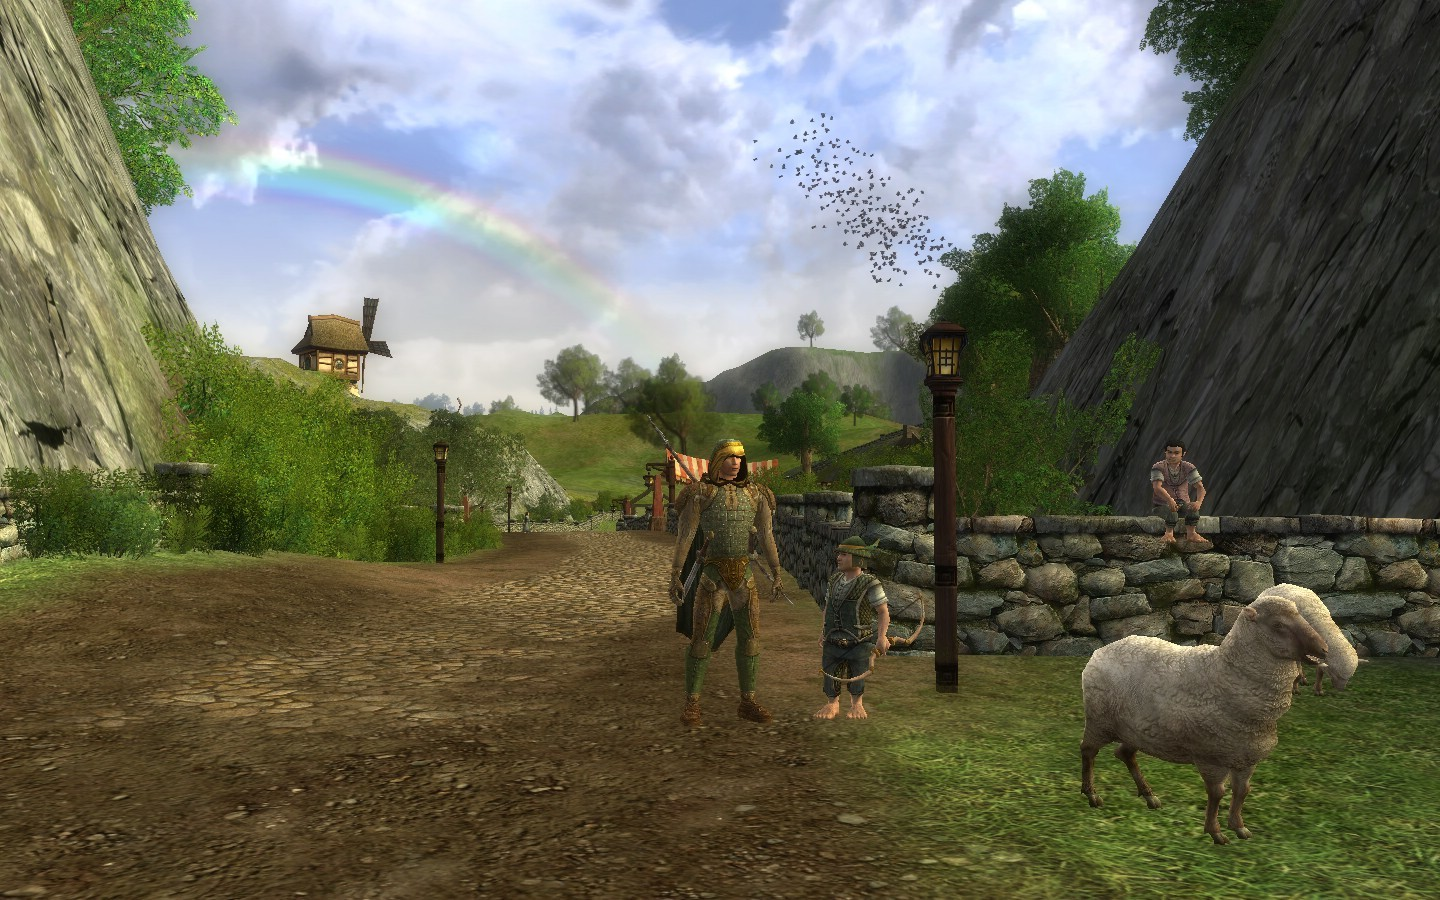 Lord of the Rings Online - The shire!